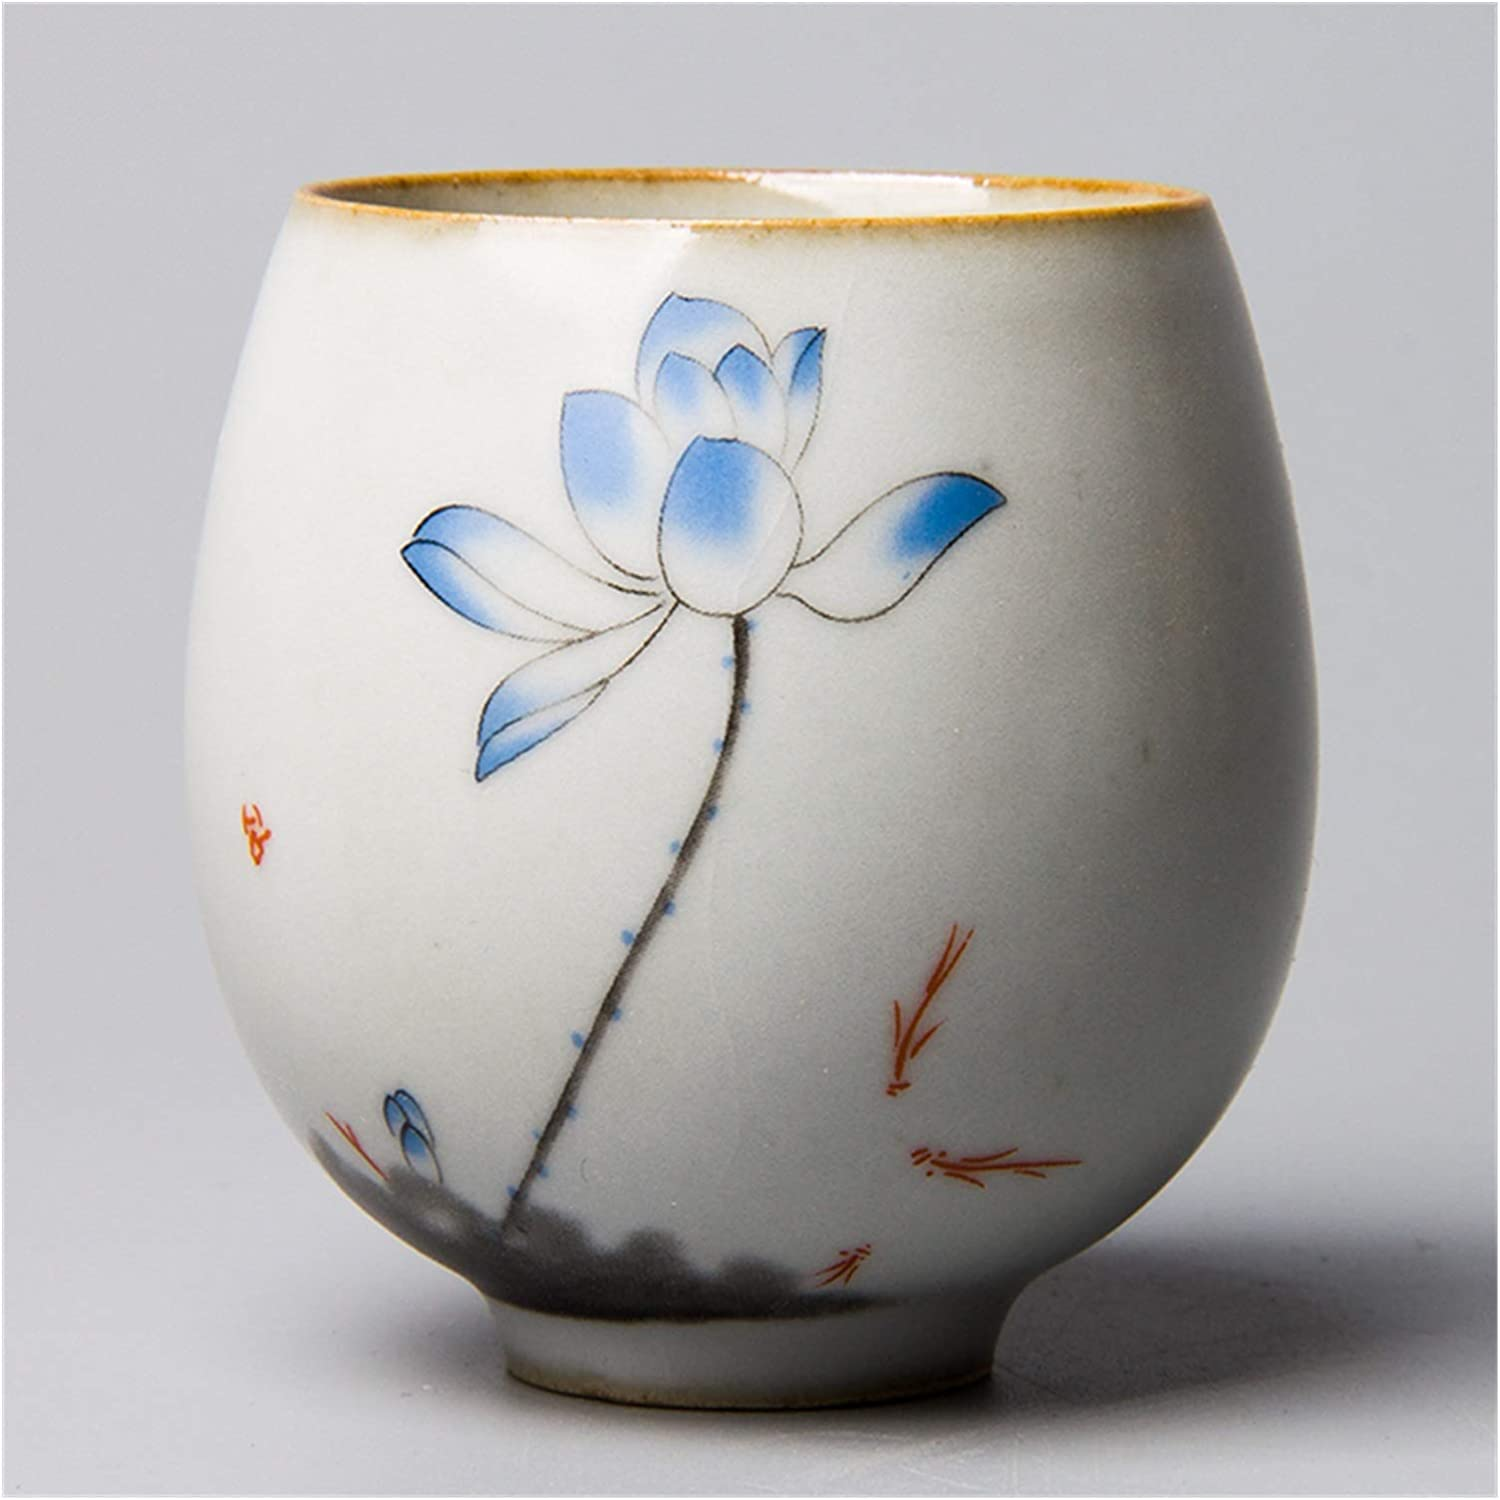 DUOWEI Max 51% OFF Ceremonial Chawan Cup Chinese Japanese Cups Porcelain Tea OFFer